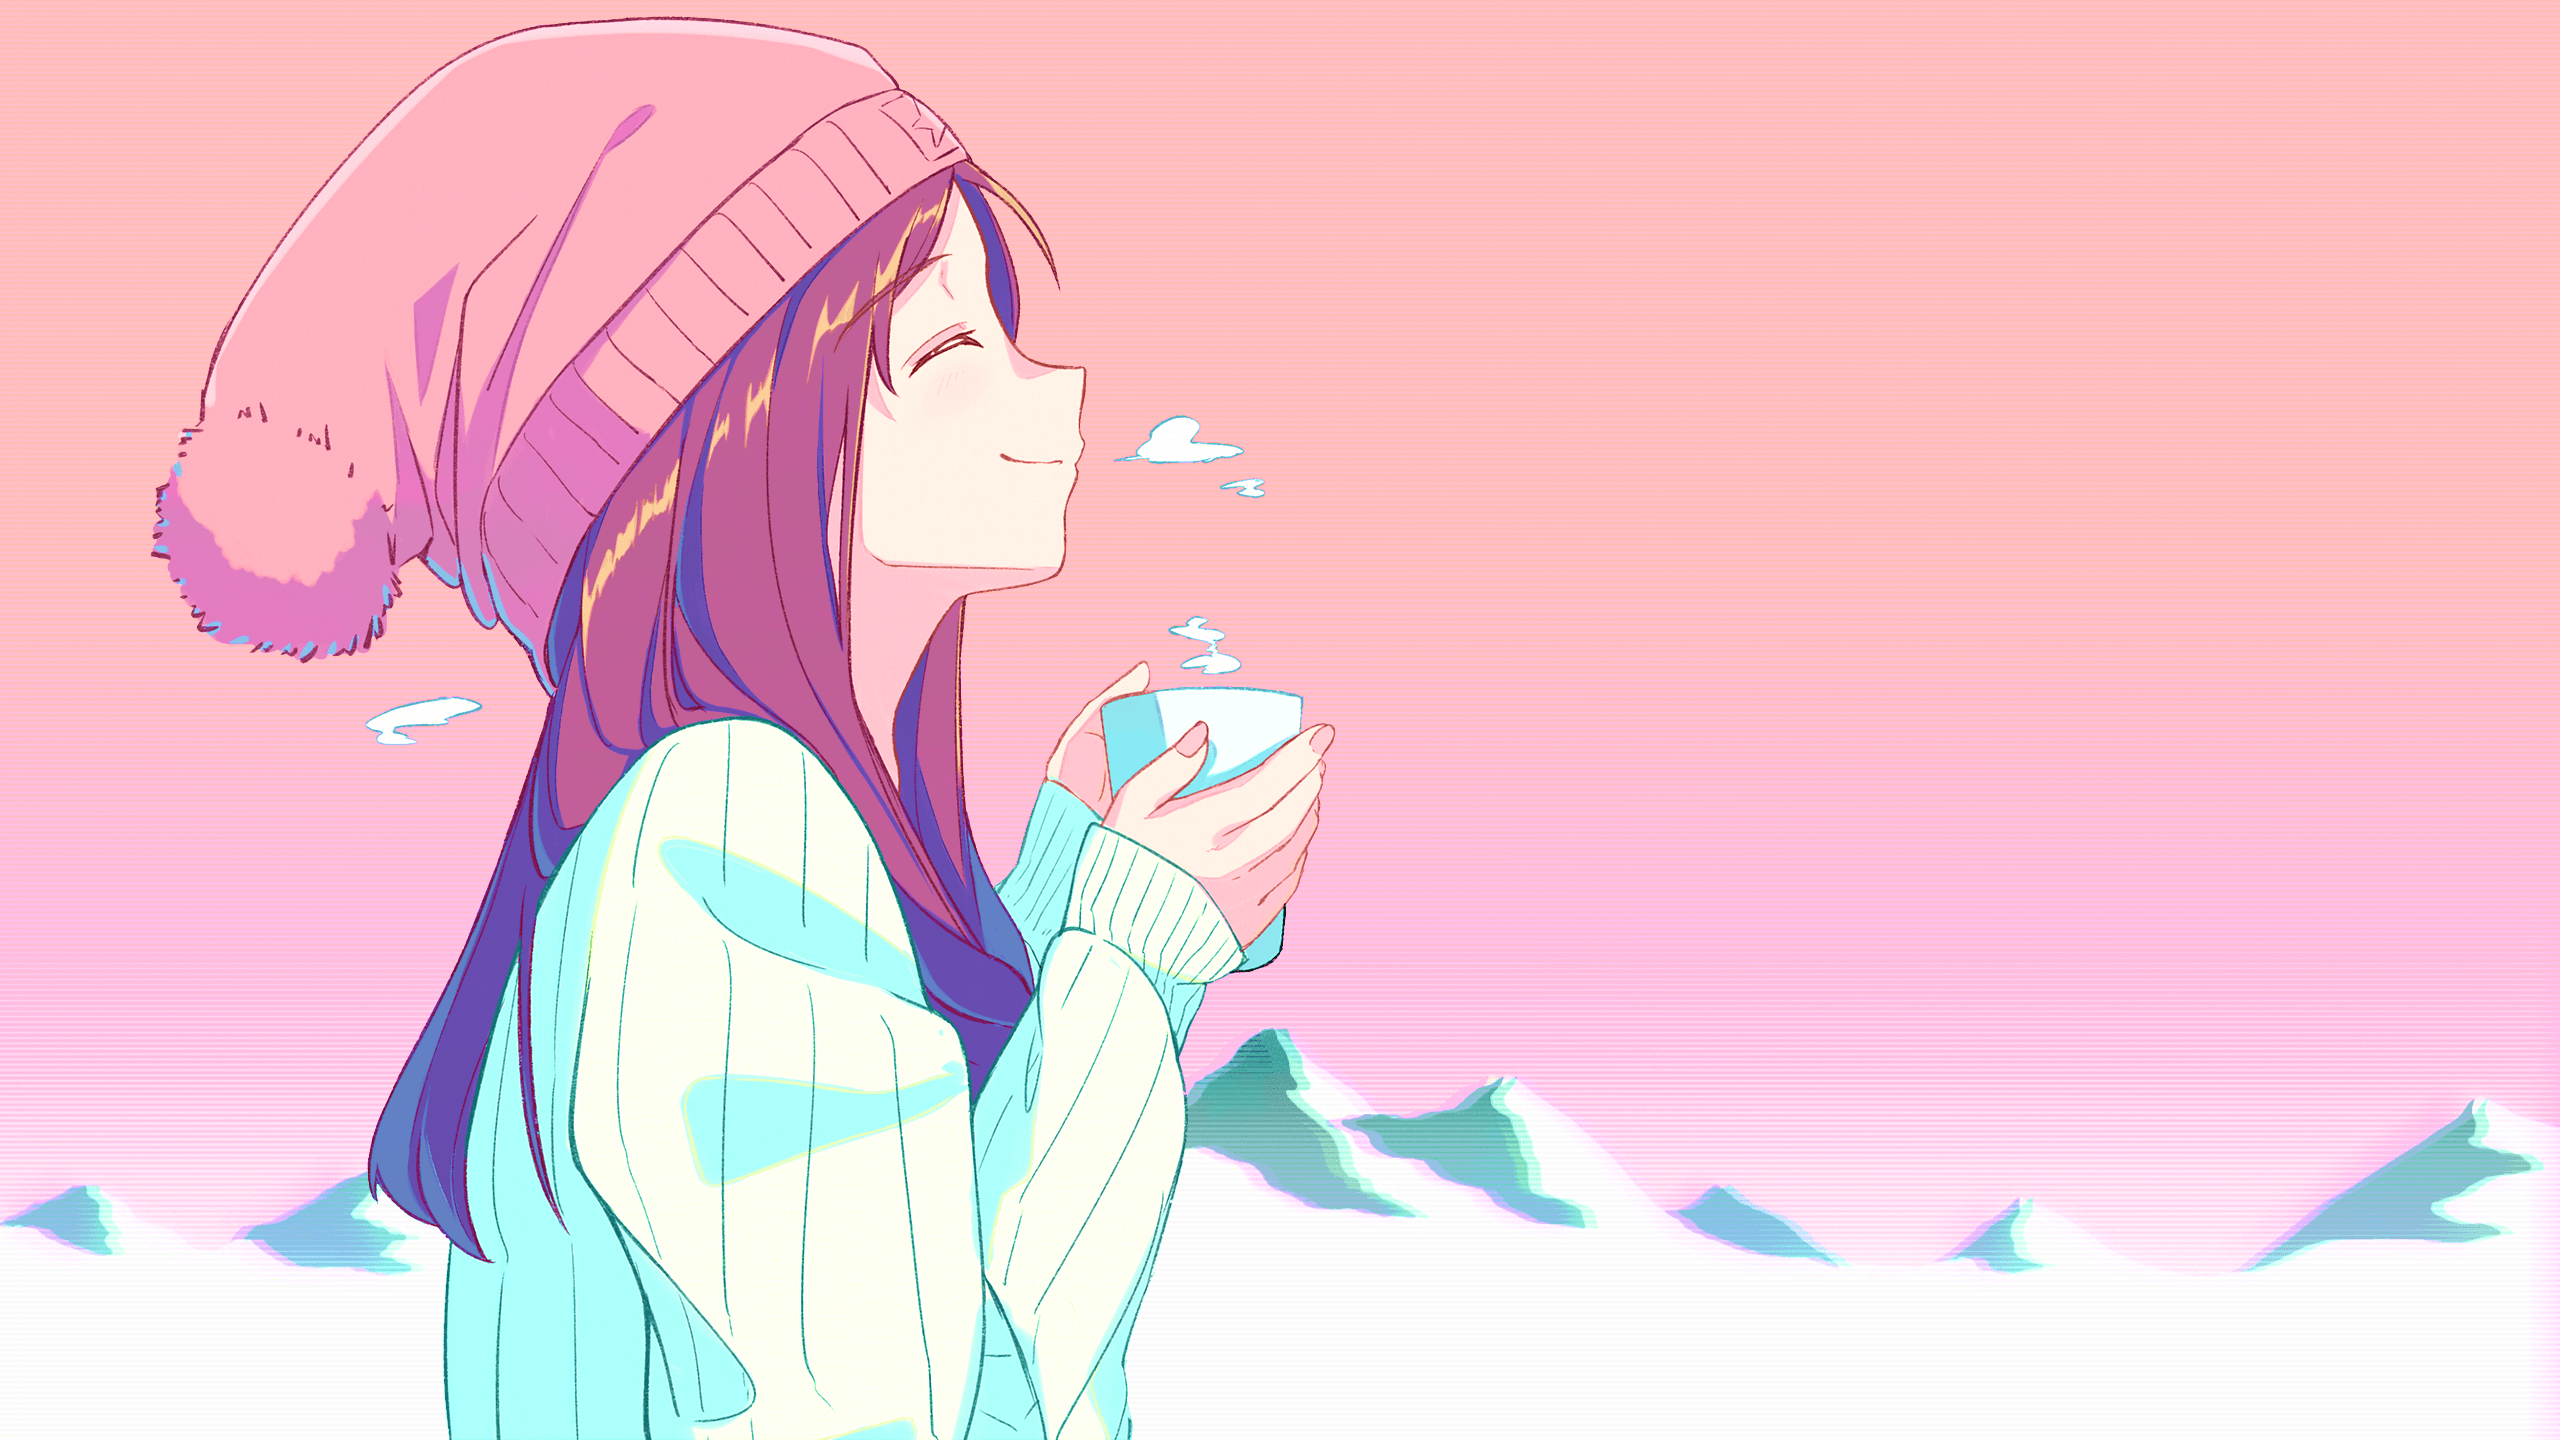 Free download Anime Girl Aesthetic Wallpapers Top Anime ...